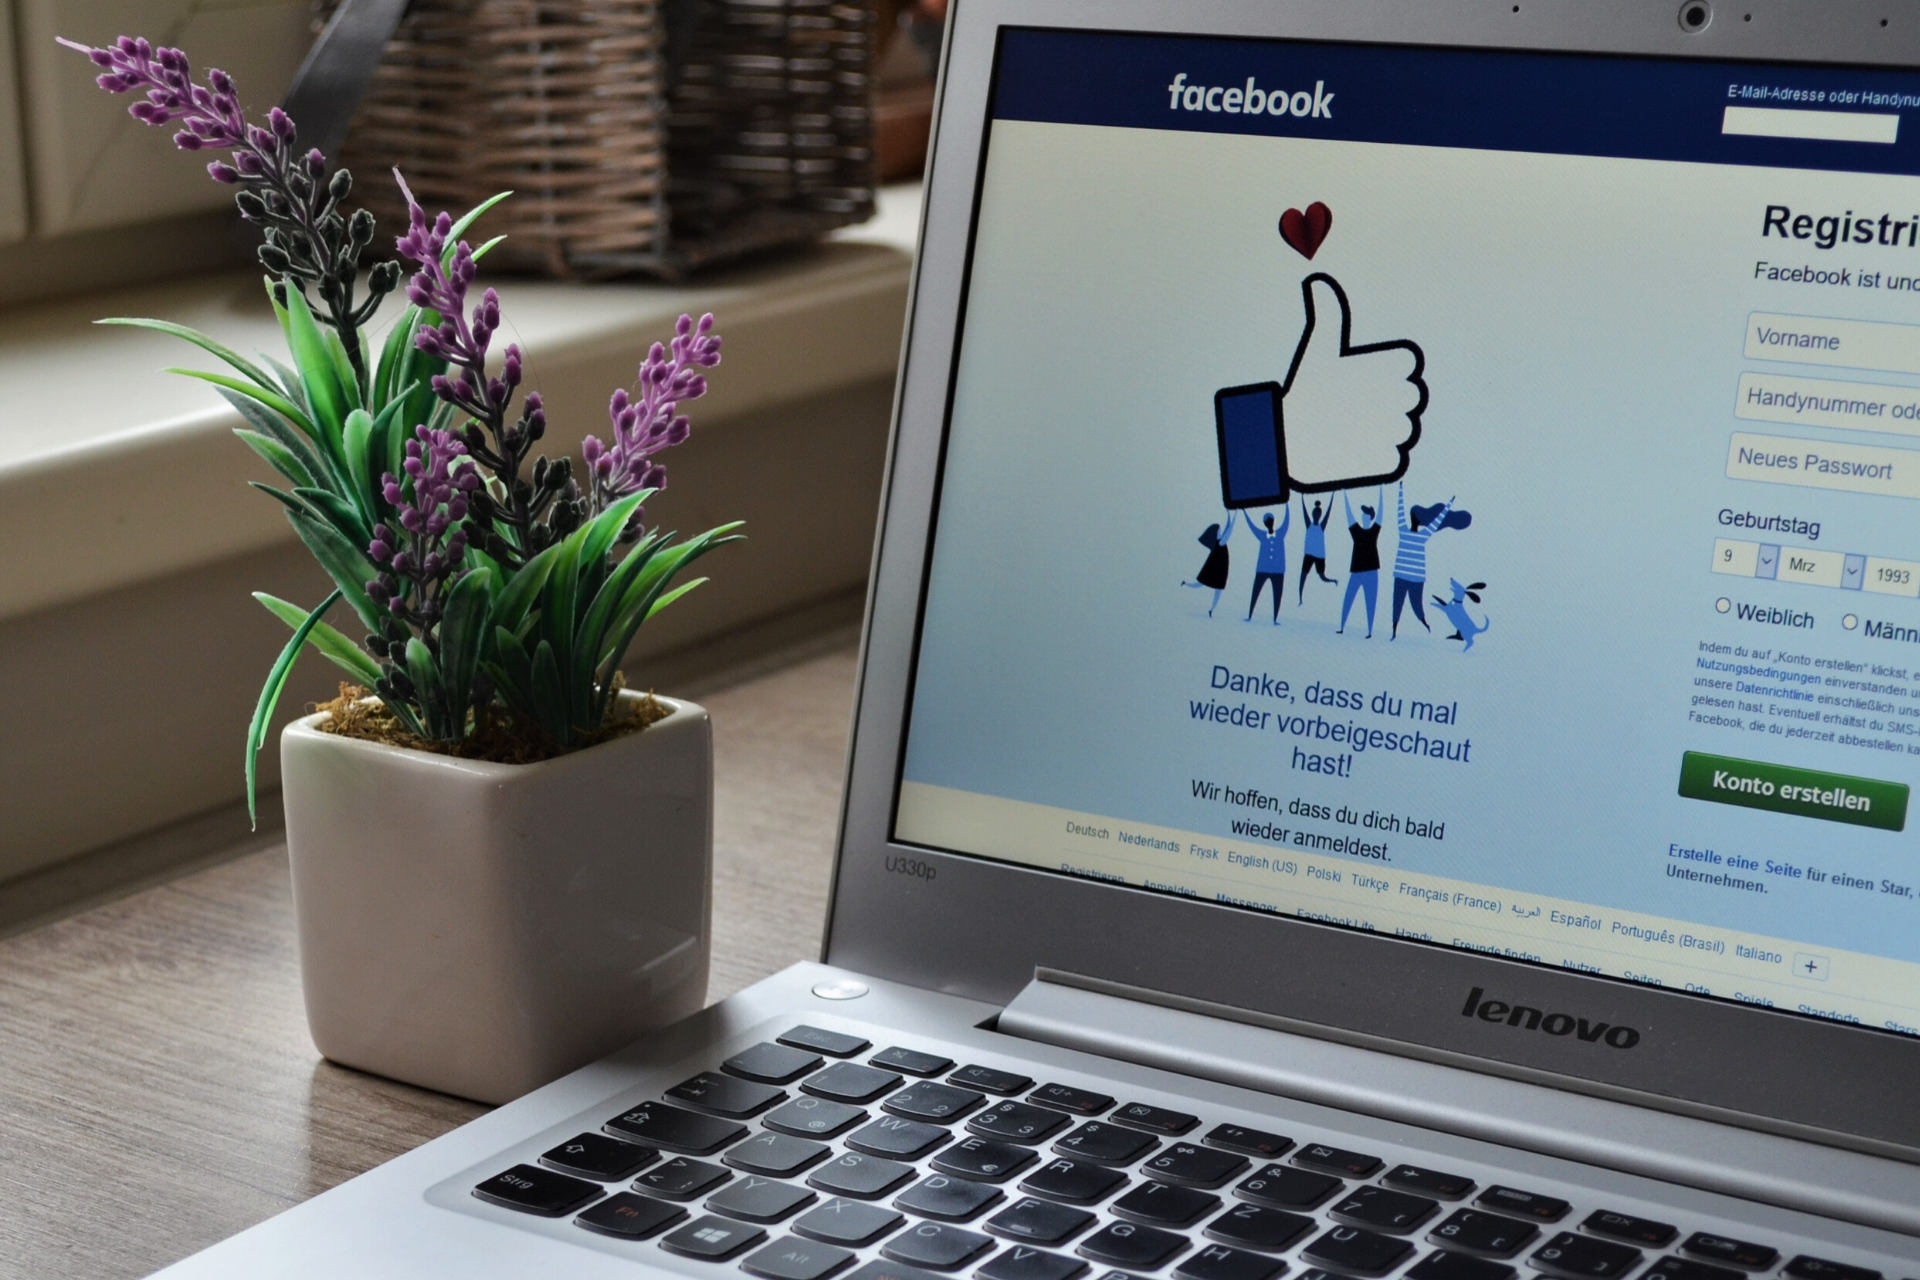 Laptop open to Facebook next to flowers